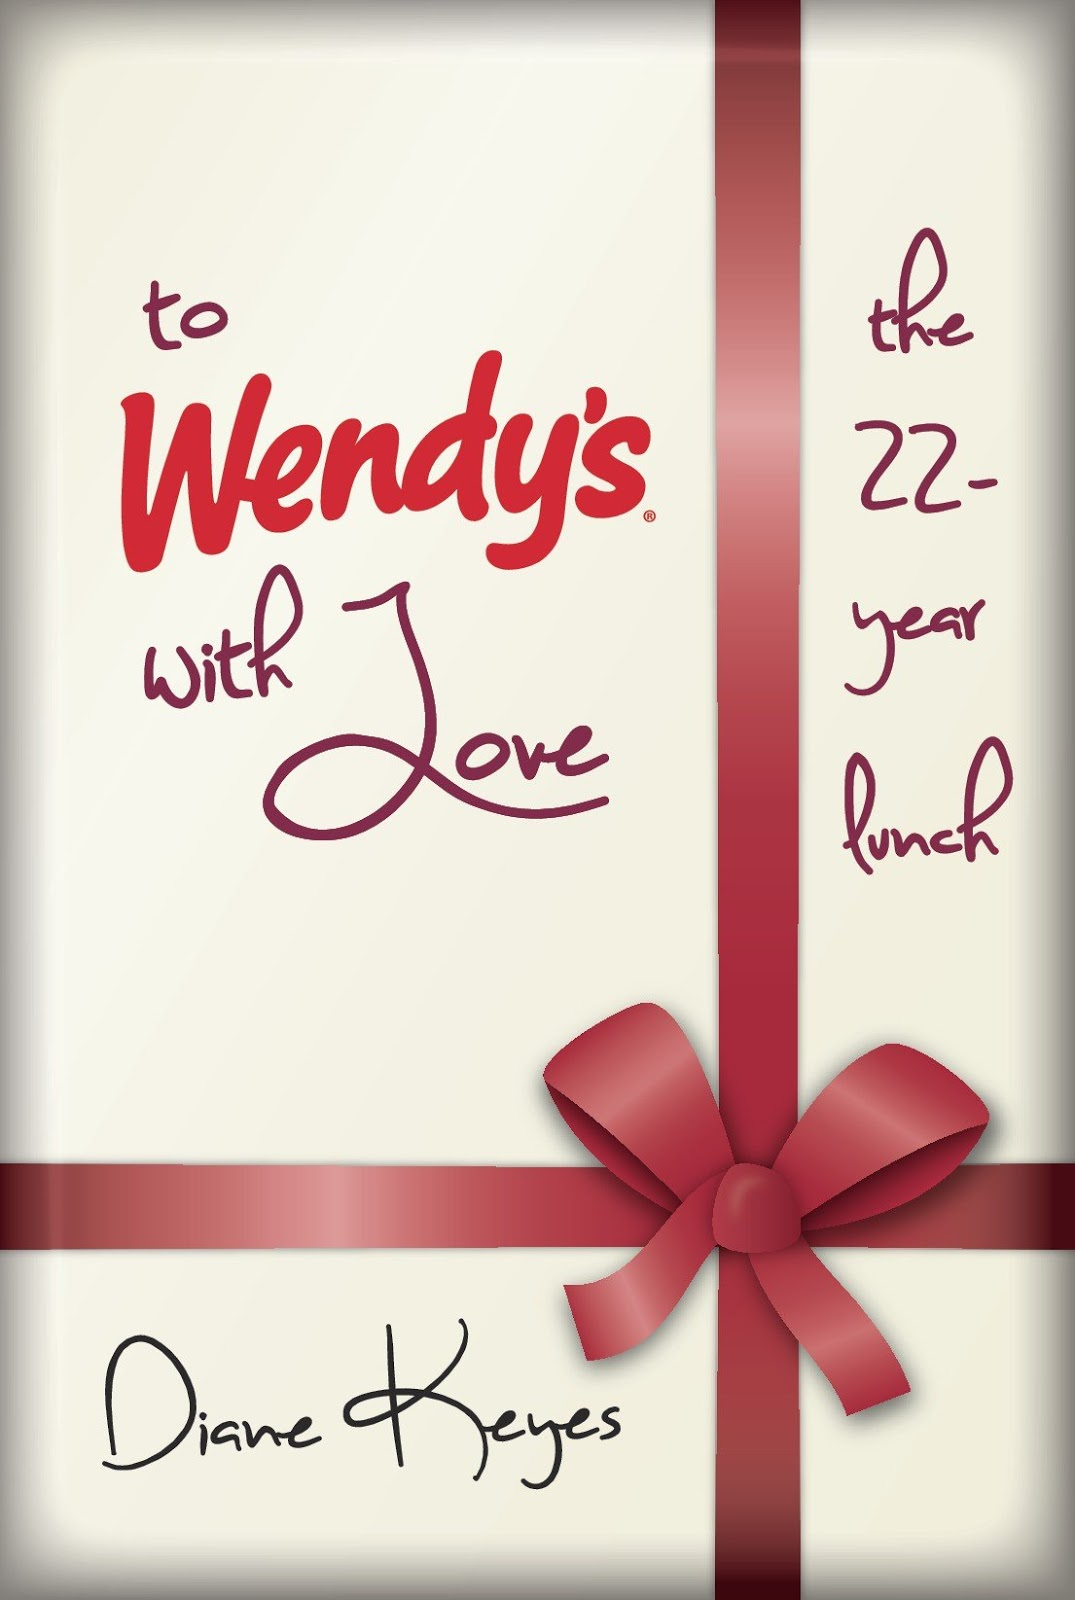 Interview with Diane Keyes about her memoir To Wendy's with Love